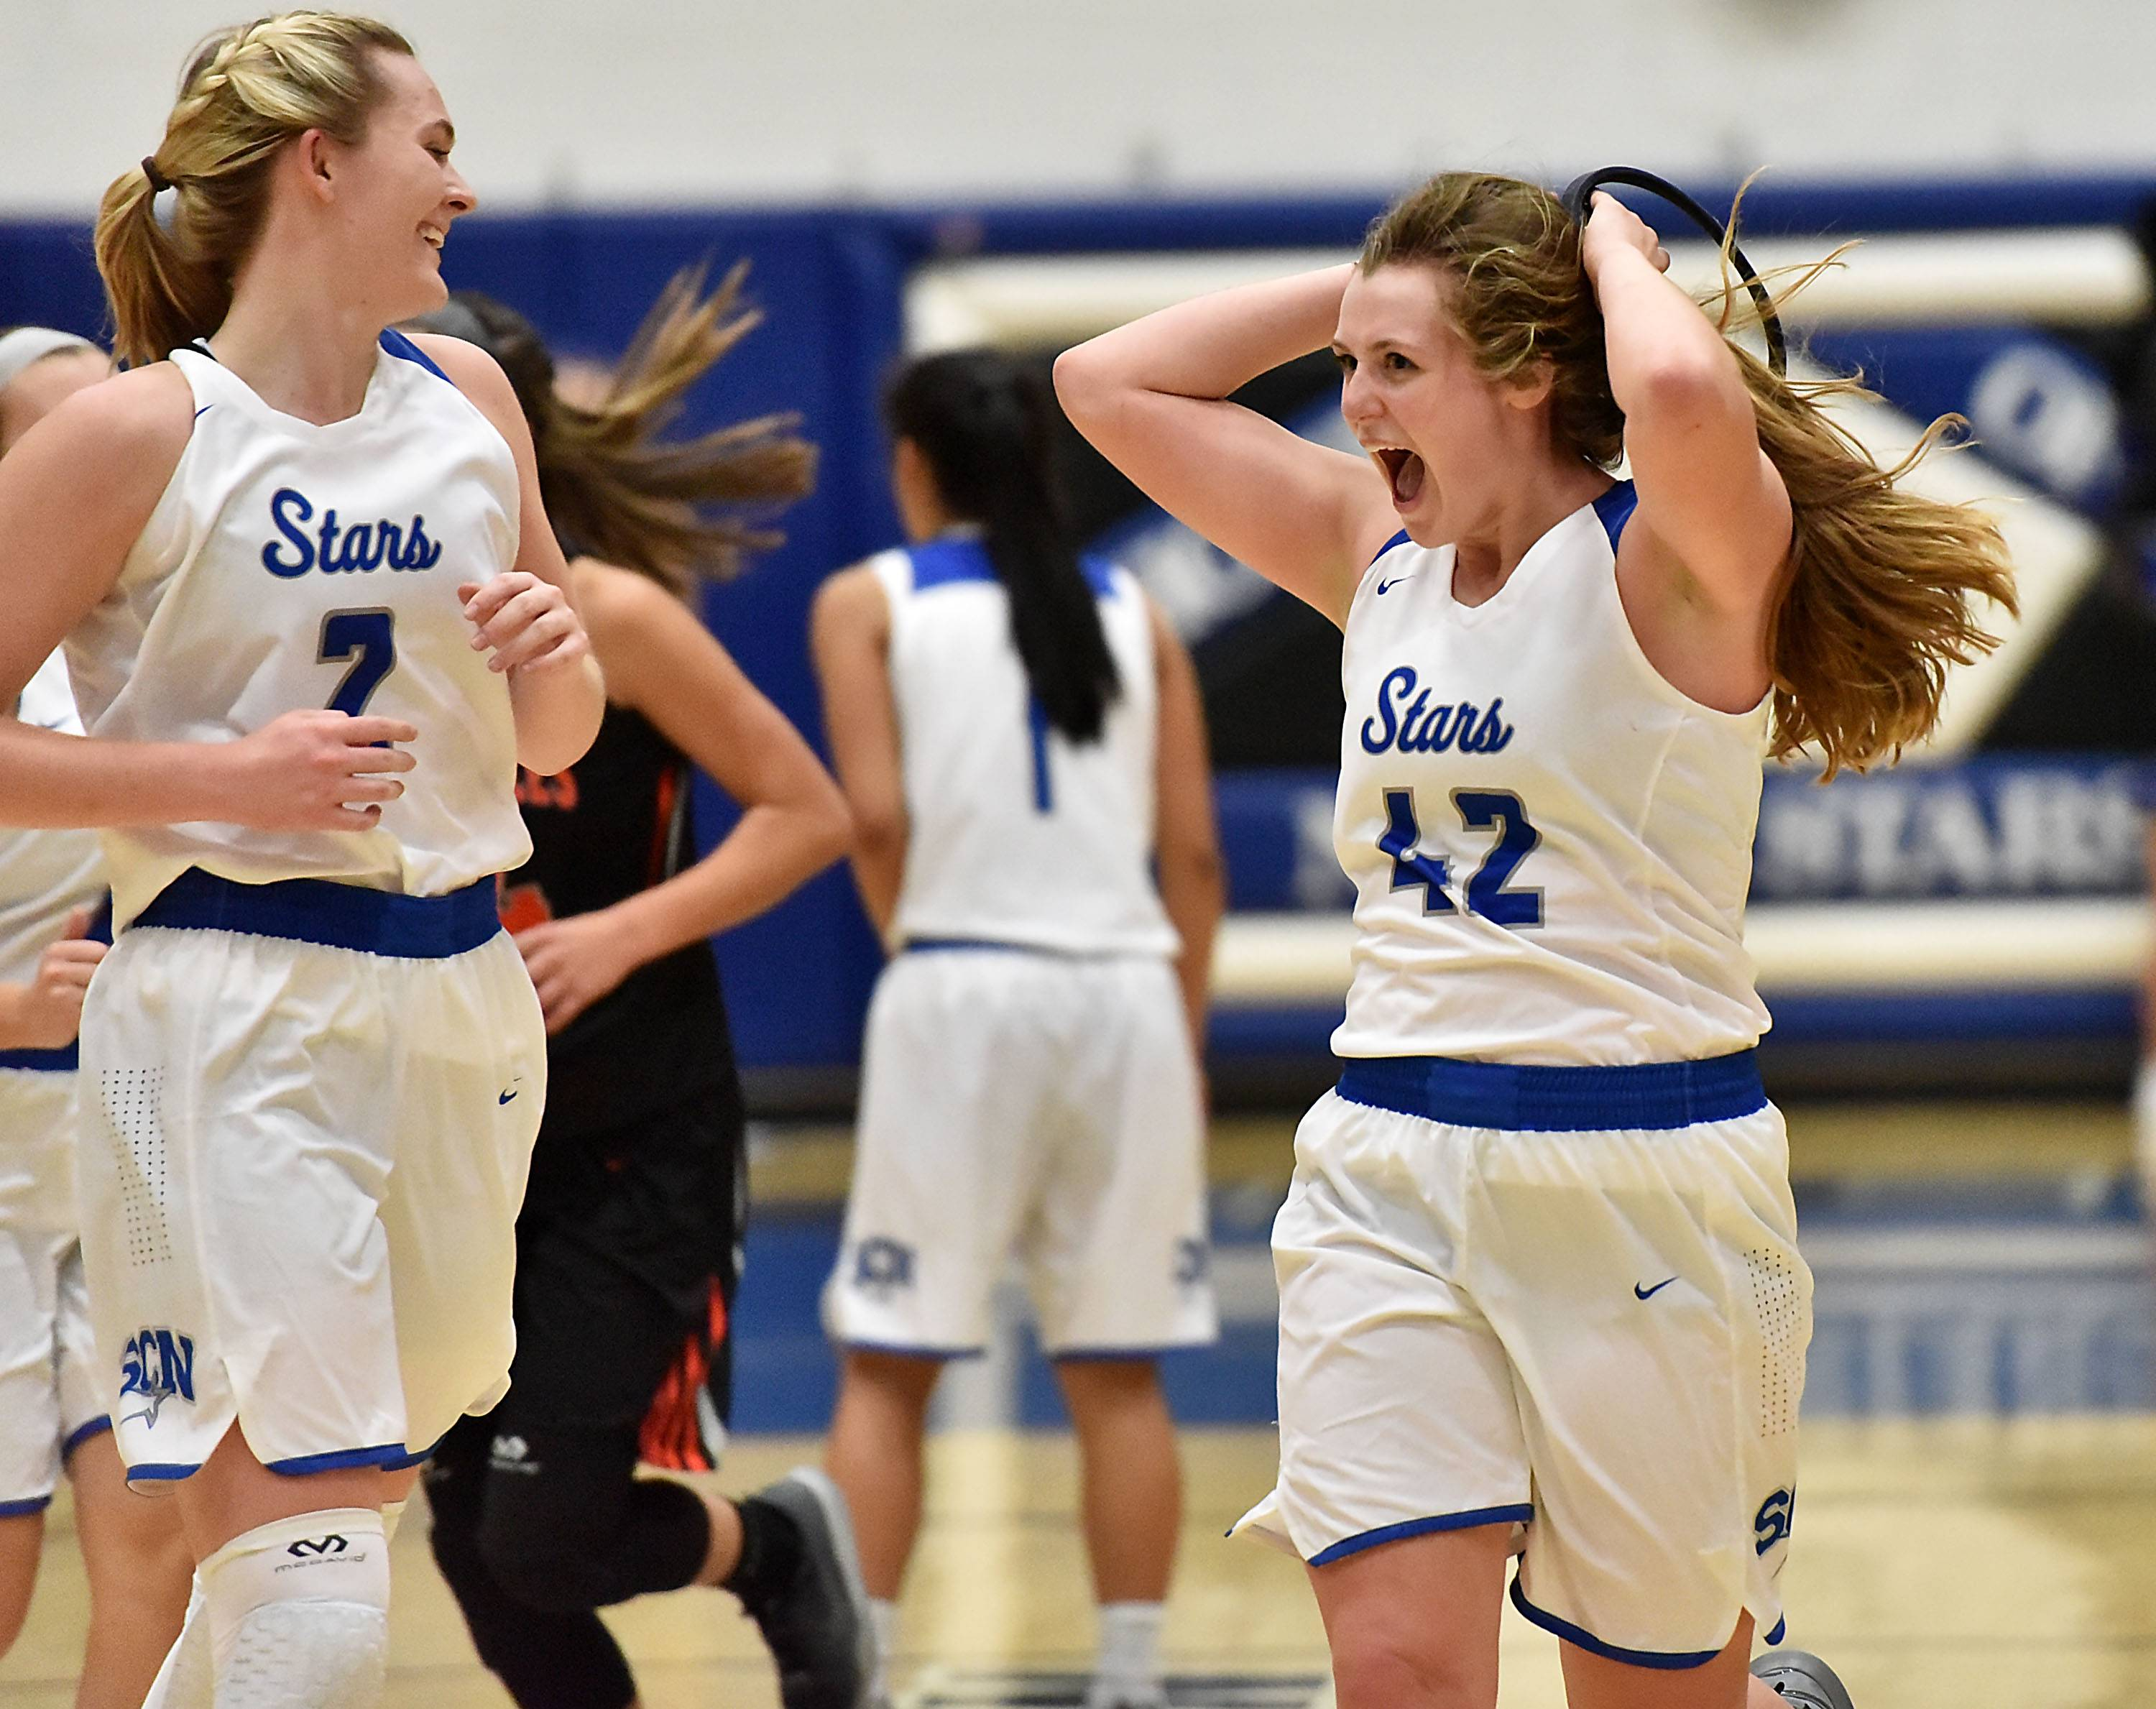 St. Charles North turns up pressure, stymies St. Charles East